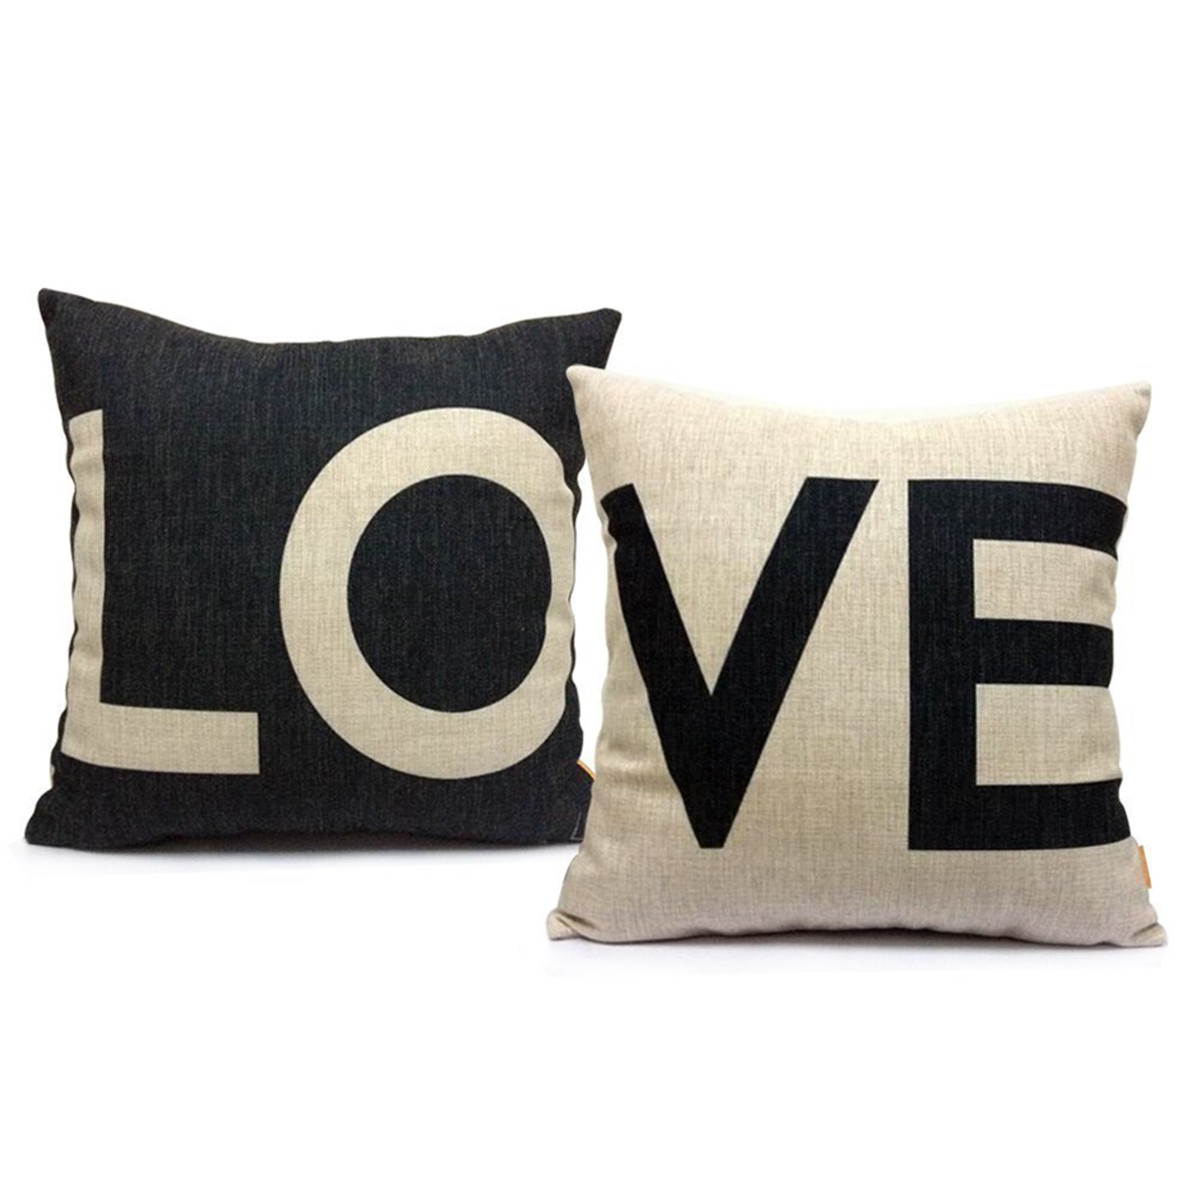 Popeven Set of 2 Love Letter Pillow cover Cotton Canvas Decorative Throw Pillow Case Cushion Cover for Sofa or Living Room 18x18''Home Decor